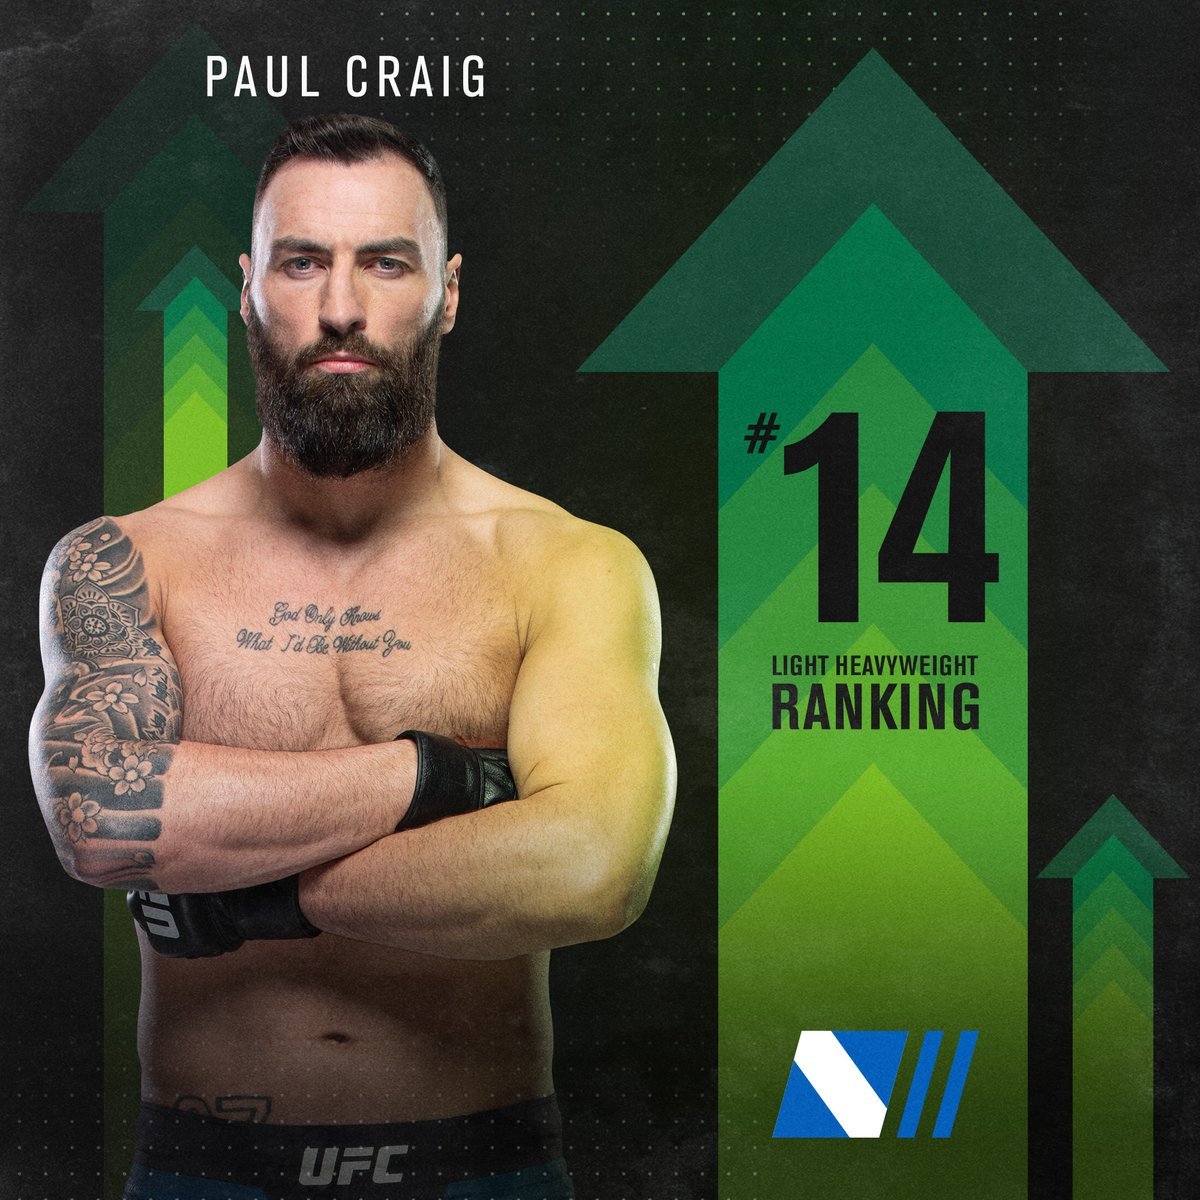 🔺 1️⃣4️⃣  @PCraigMMA starting to make moves at light heavyweight! https://t.co/7Tqq0RR6xL